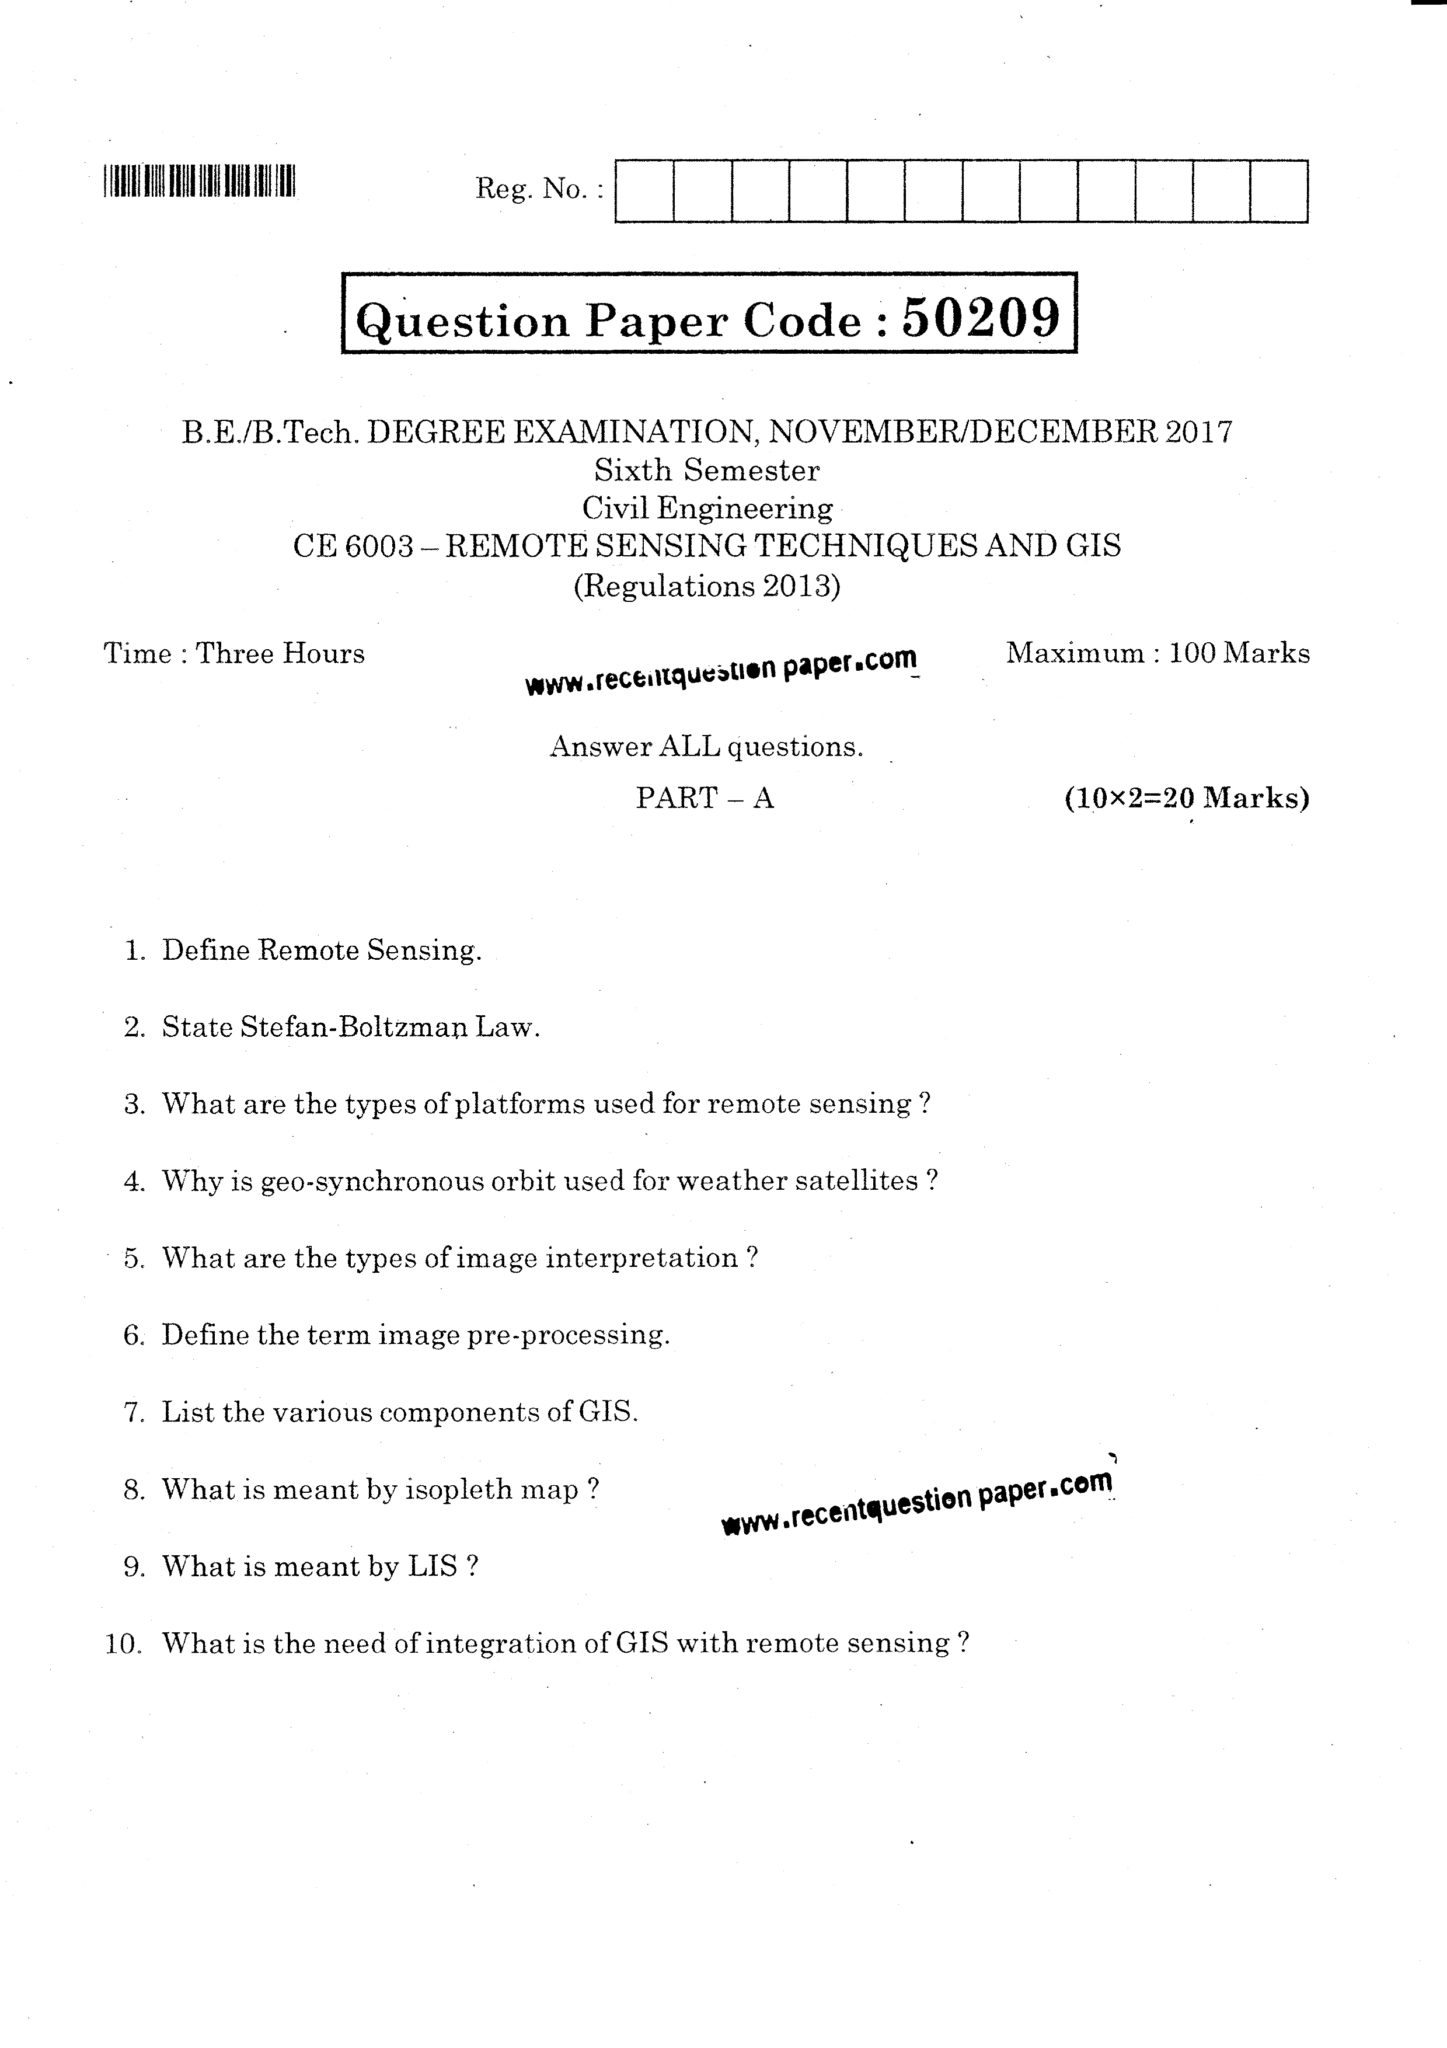 CE6003 Remote Sensing Techniques And GIS Question Paper Nov